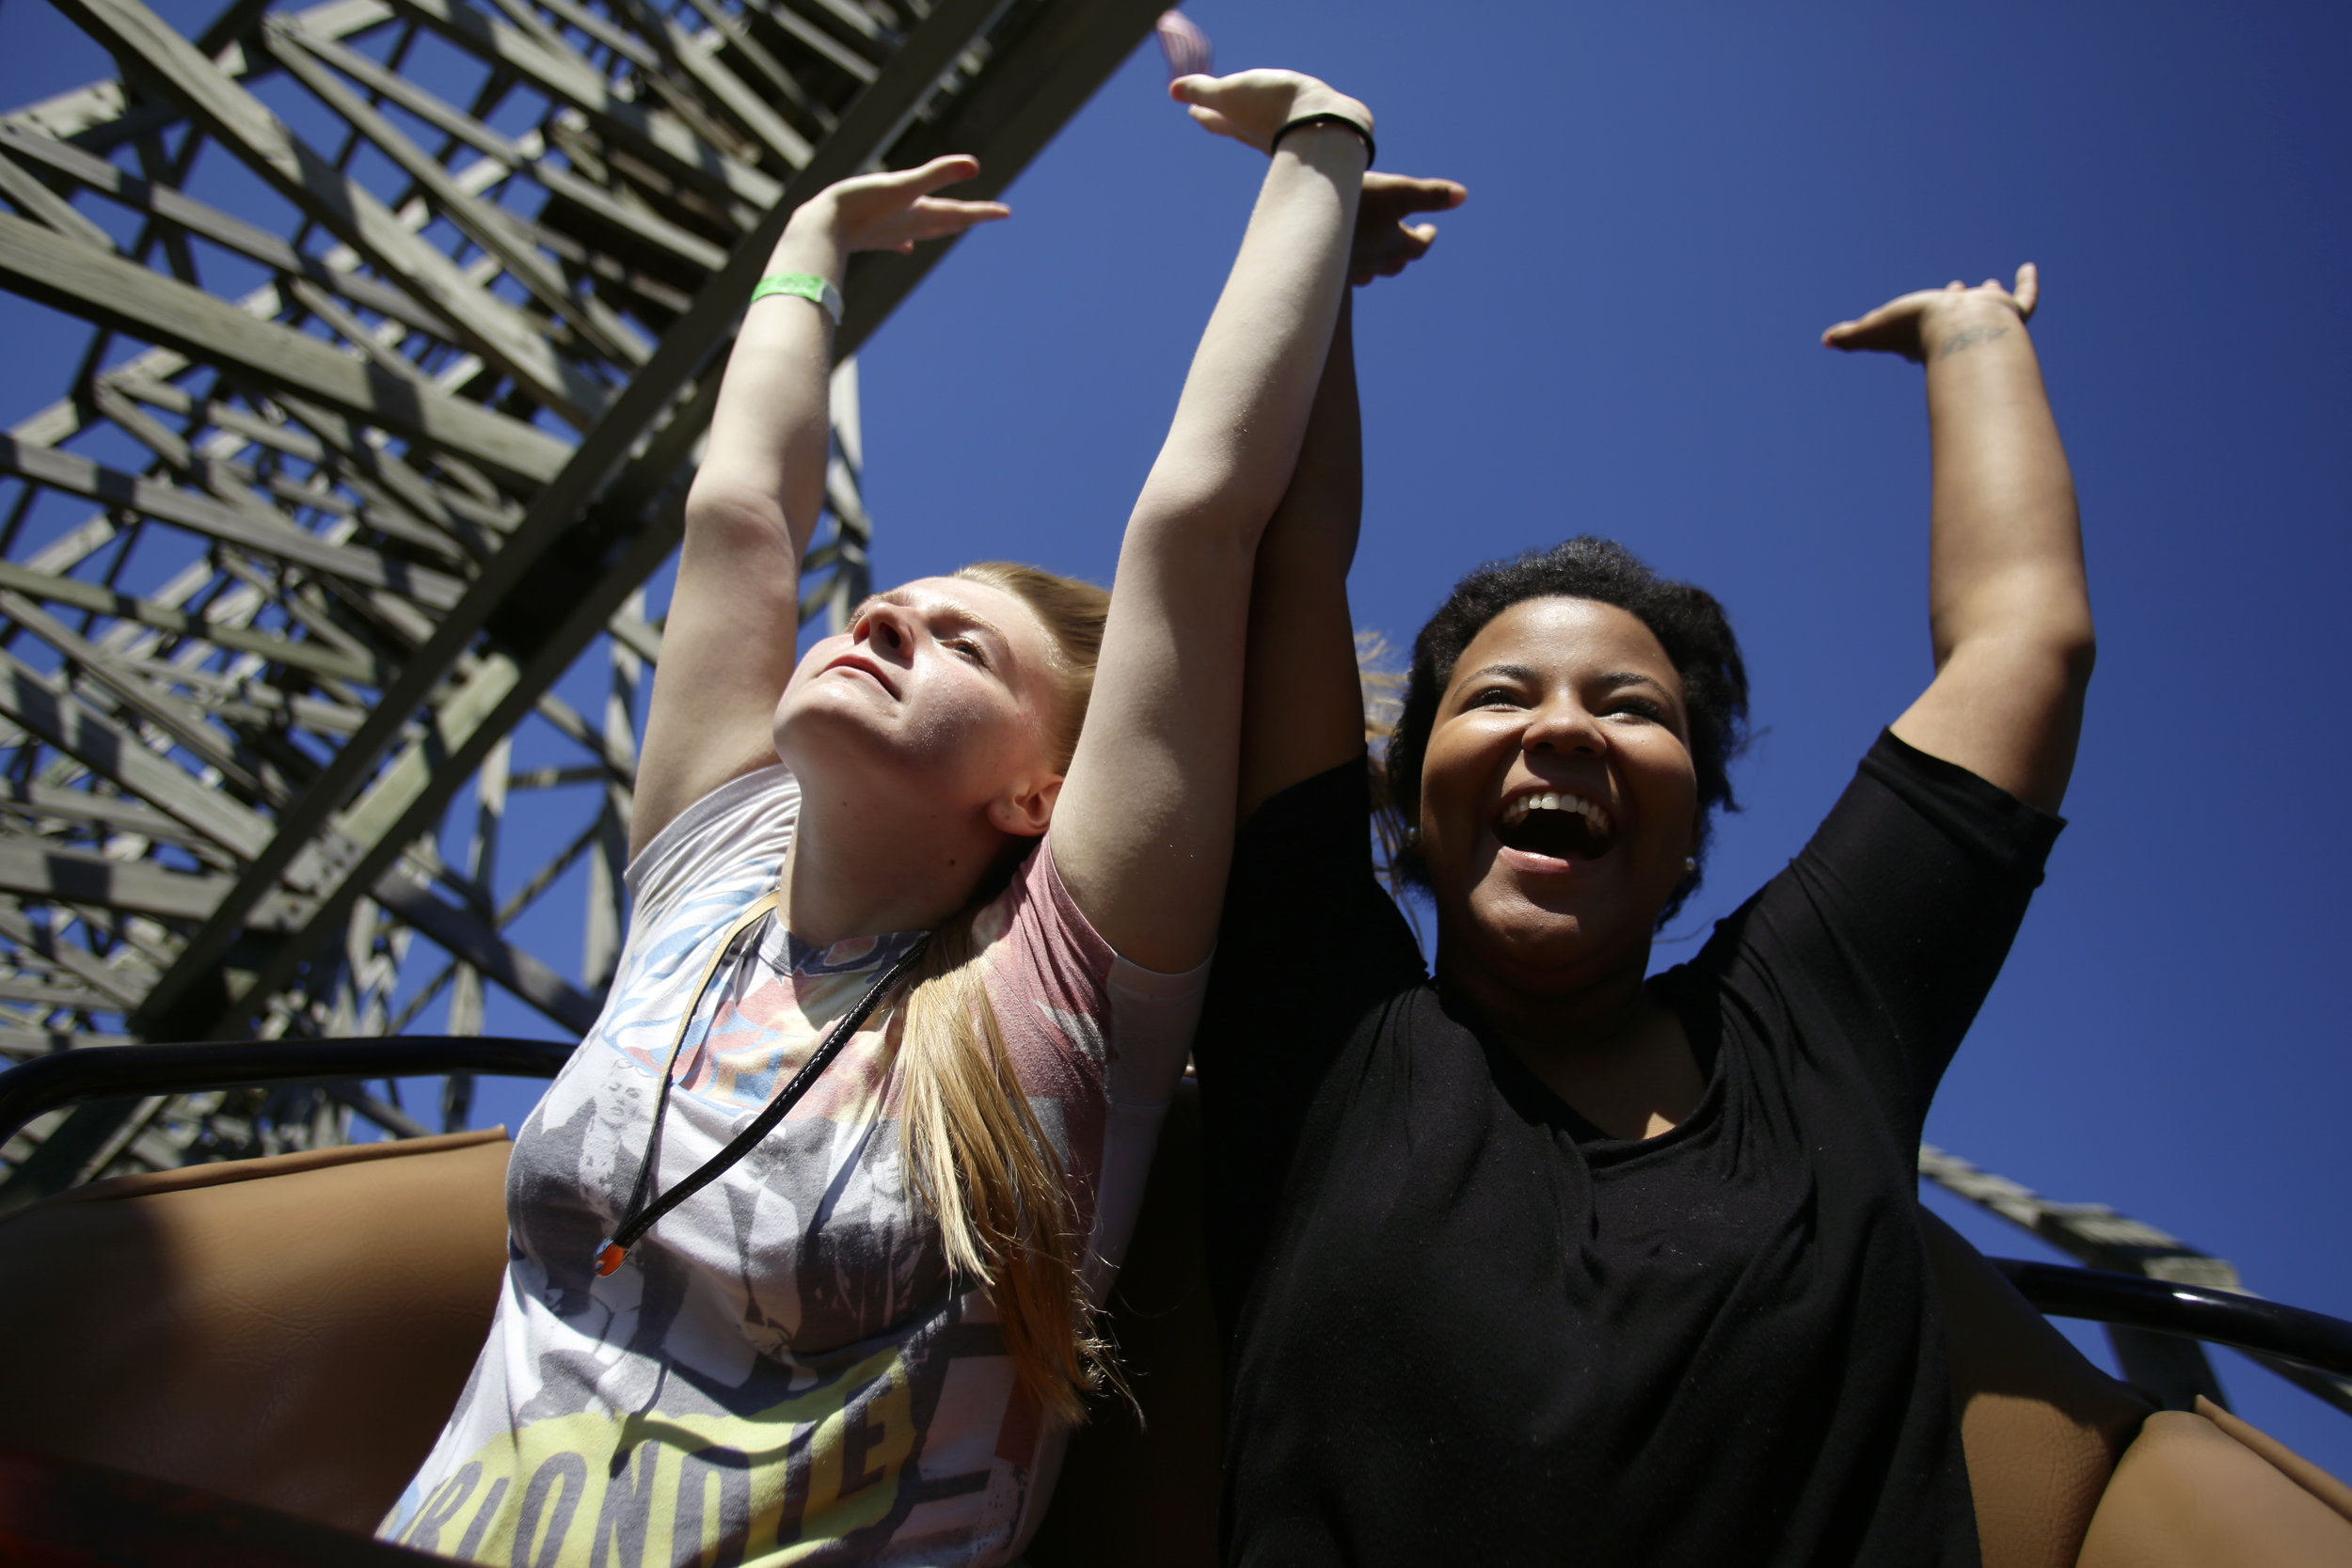 """Enjoying time off from work Bowling Green residents Kelcie Poteet, 17, and Jean Burden, 16, (L to R) throw their hands in the air while riding Beech Bend Park's infamous wooden roller coaster """"The Rumbler"""" Sunday September 14, 2014. """"We got off early today so we decided we would start ridin'"""", Jean said. """"This is definitely the best part about working here."""""""